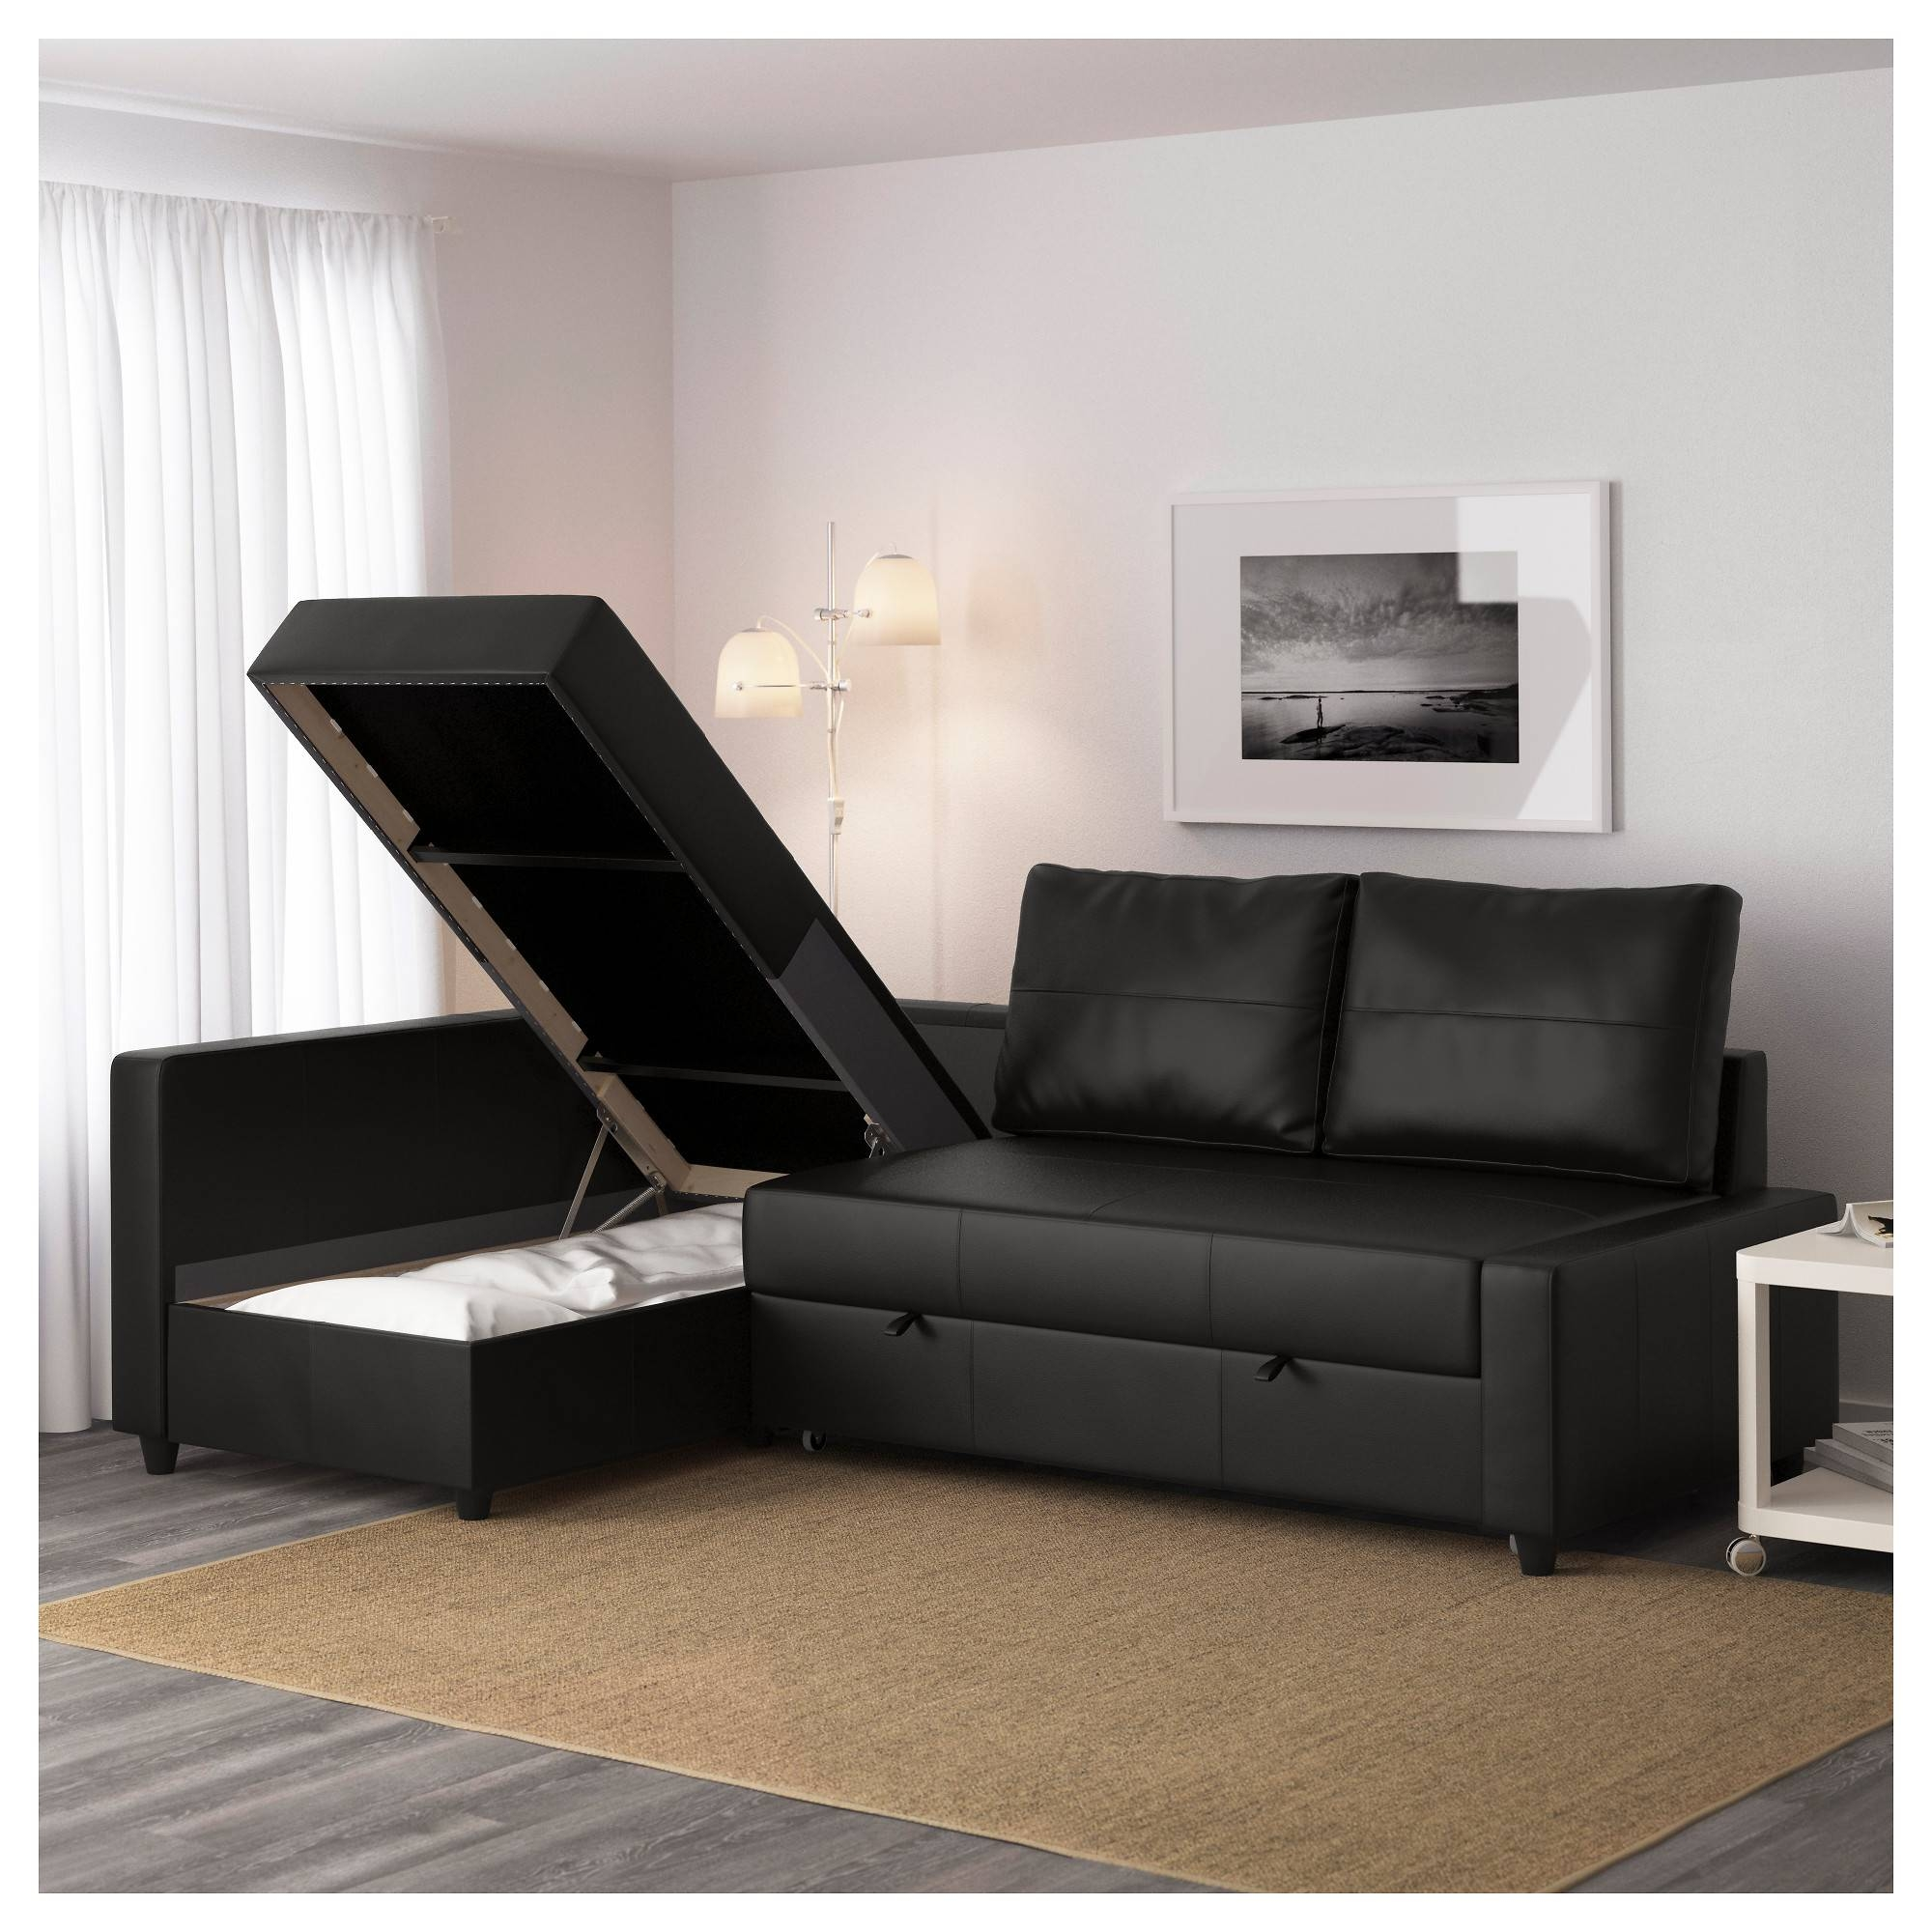 Sofas Center : Ikea Manstad Sofa For Salemanstad With Storage in Manstad Sofa Bed Ikea (Image 22 of 25)